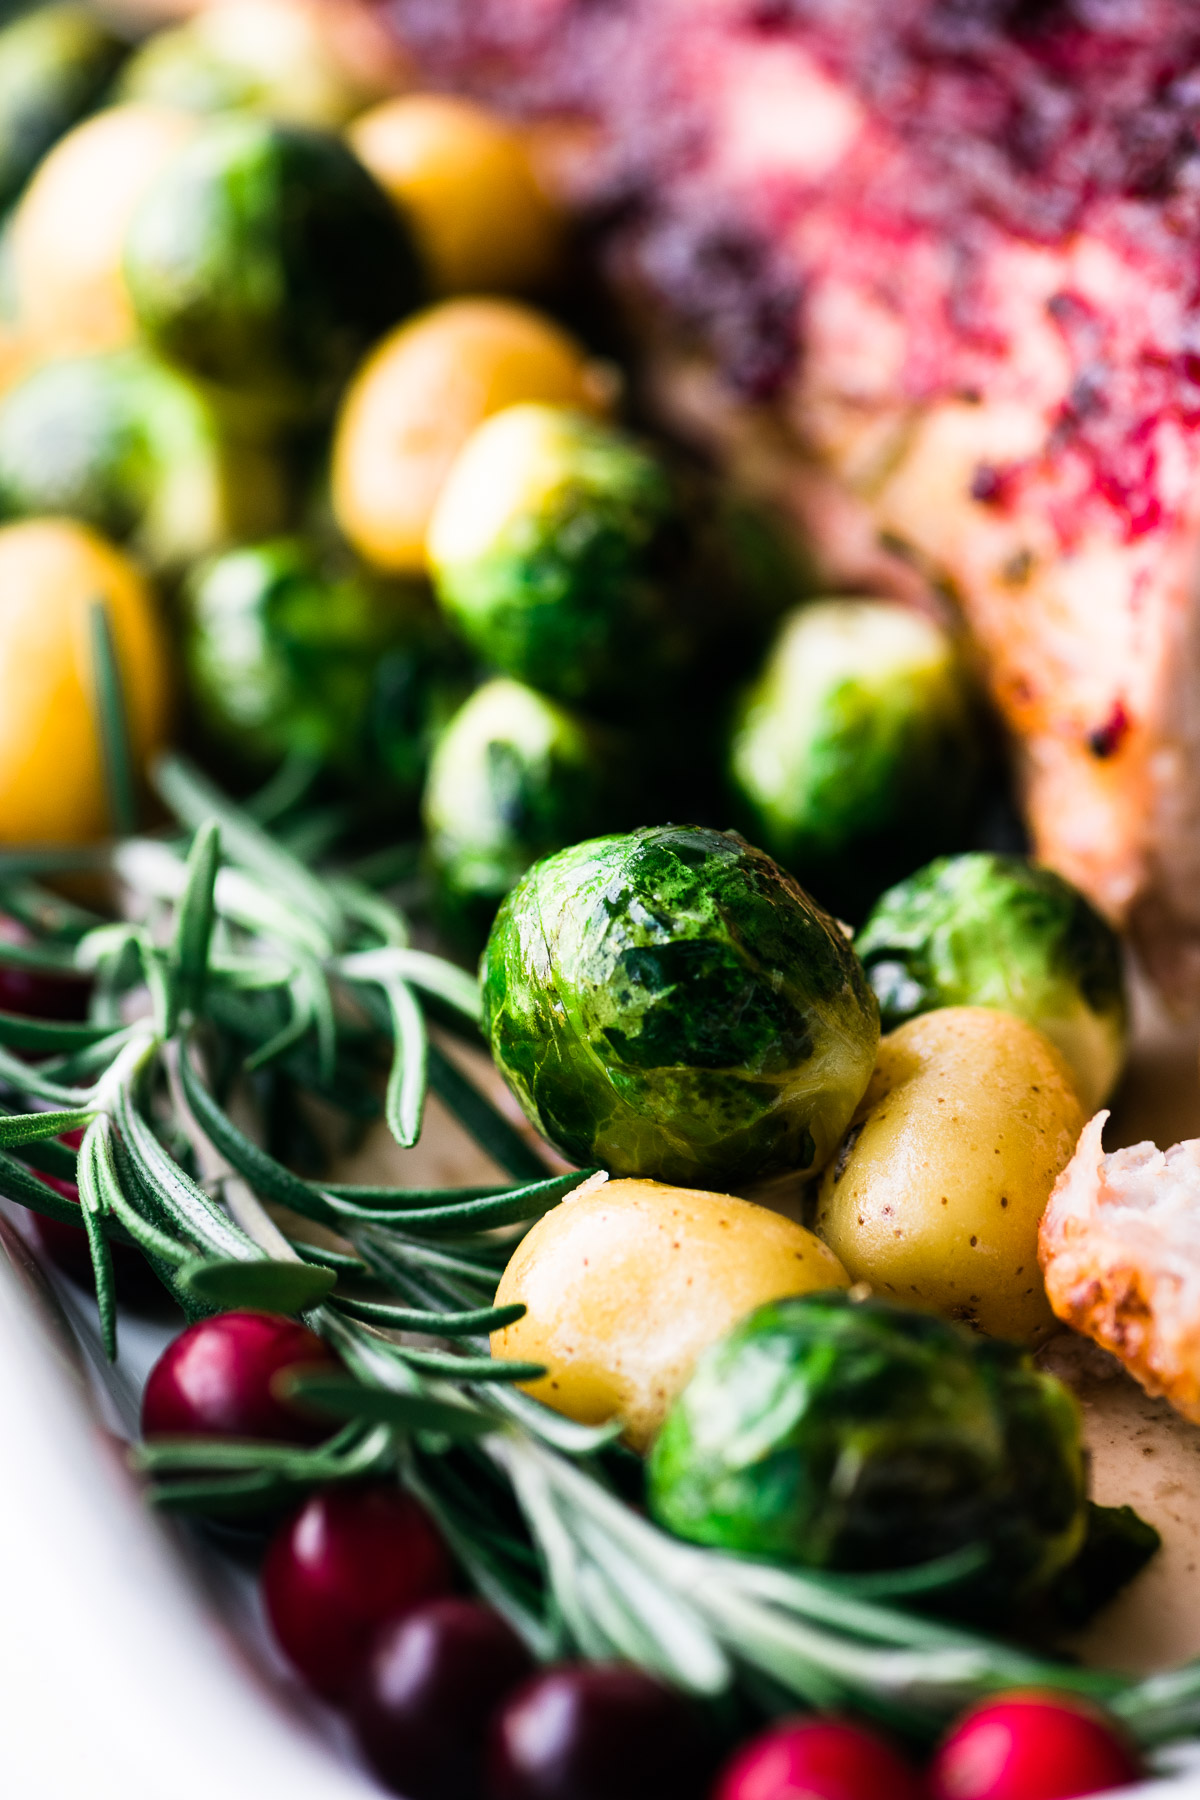 roasted Brussels sprouts and PeeWee potatoes